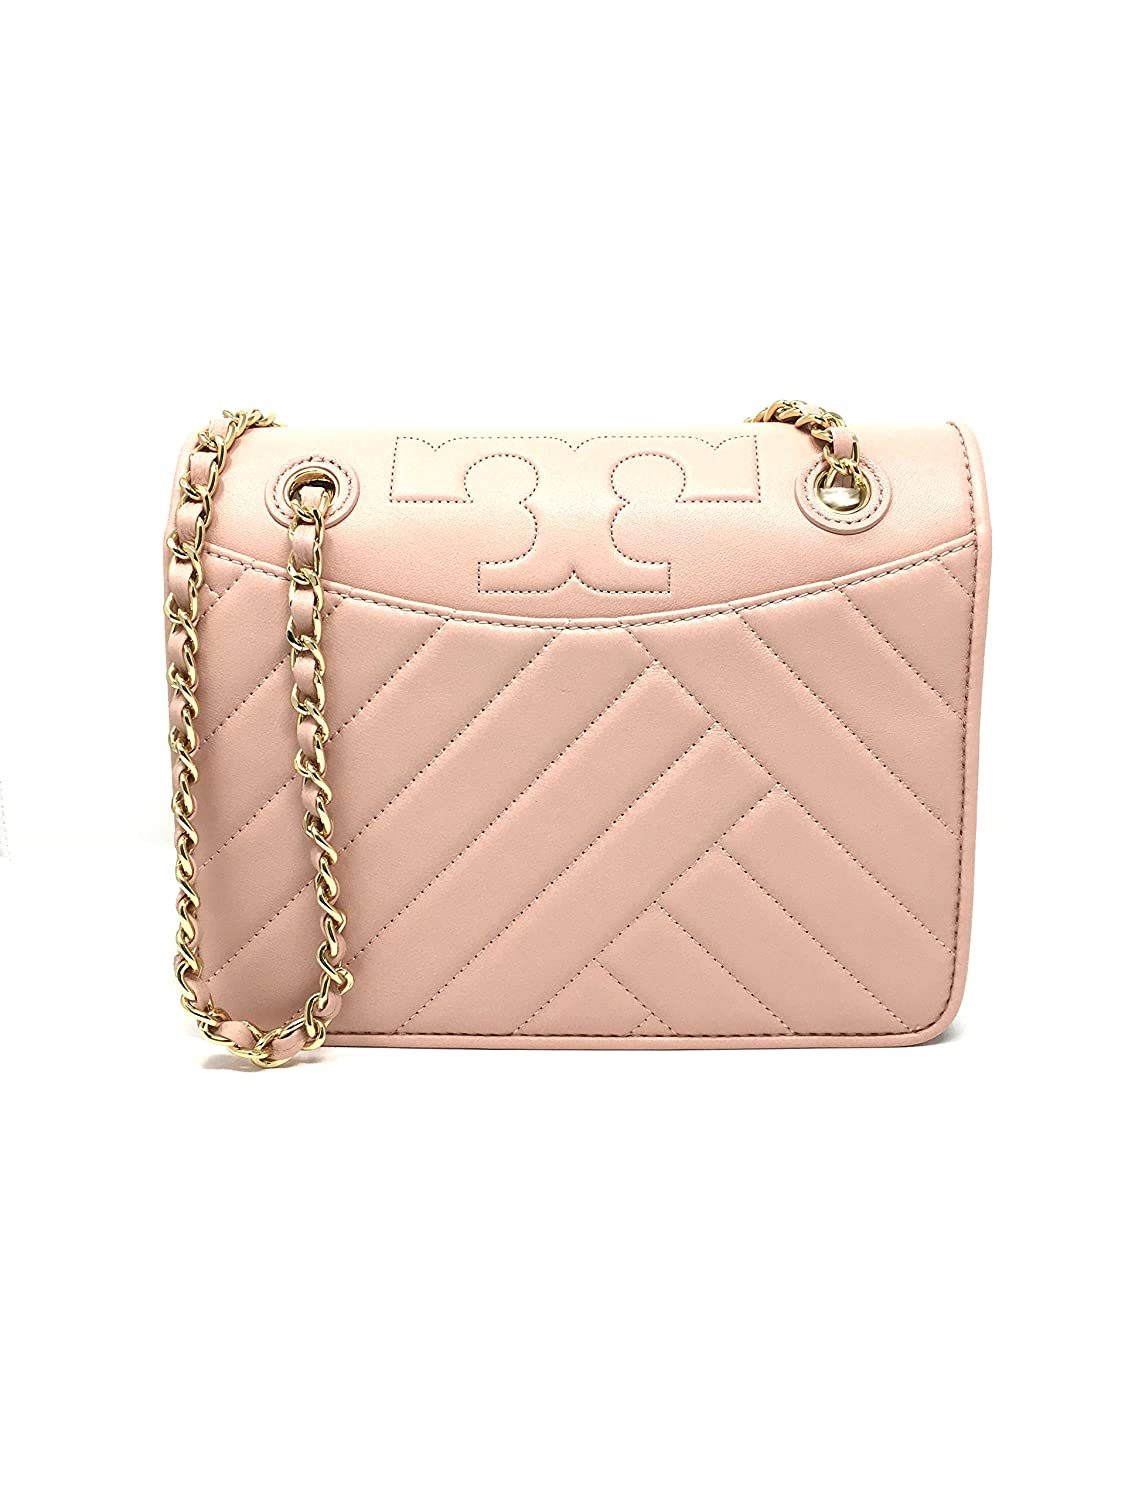 06ac589ad84c Tory Burch Alexa Convertible Shoulder Bag in Pink Quartz Style 506430418   Handbags  Amazon.com